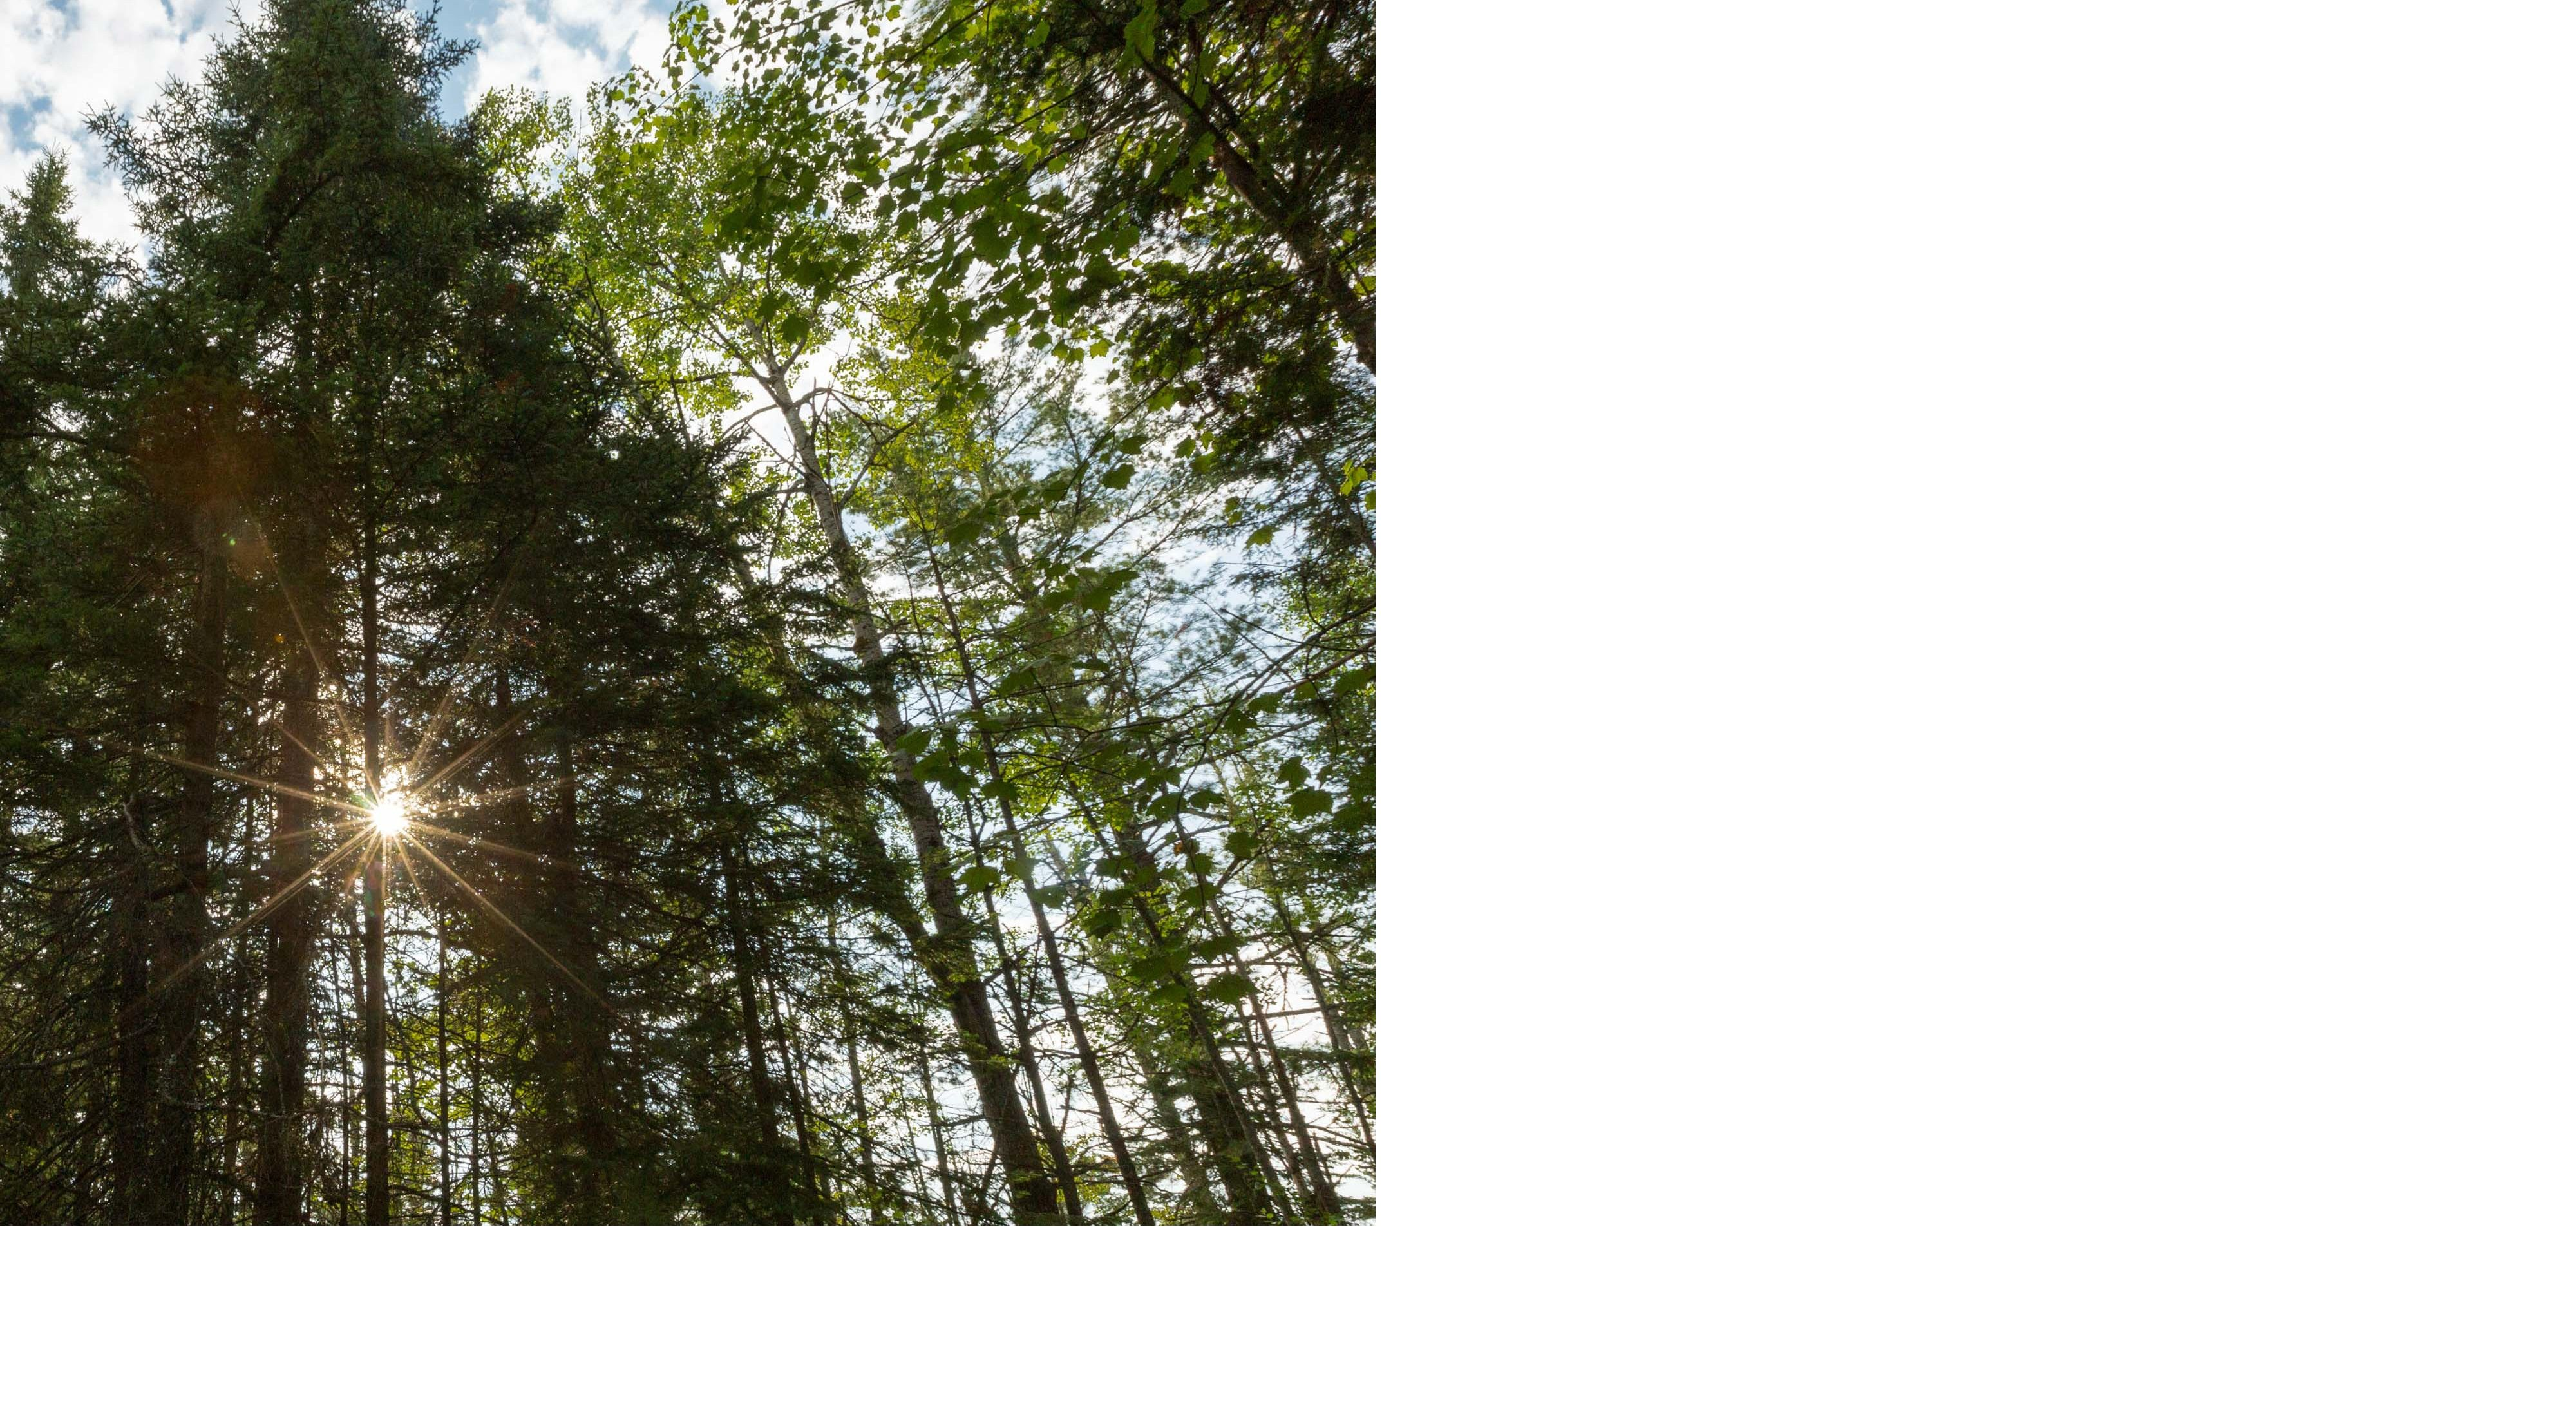 Tall pine trees reach for a cloud-spotted sky, while the sun shines between branches.